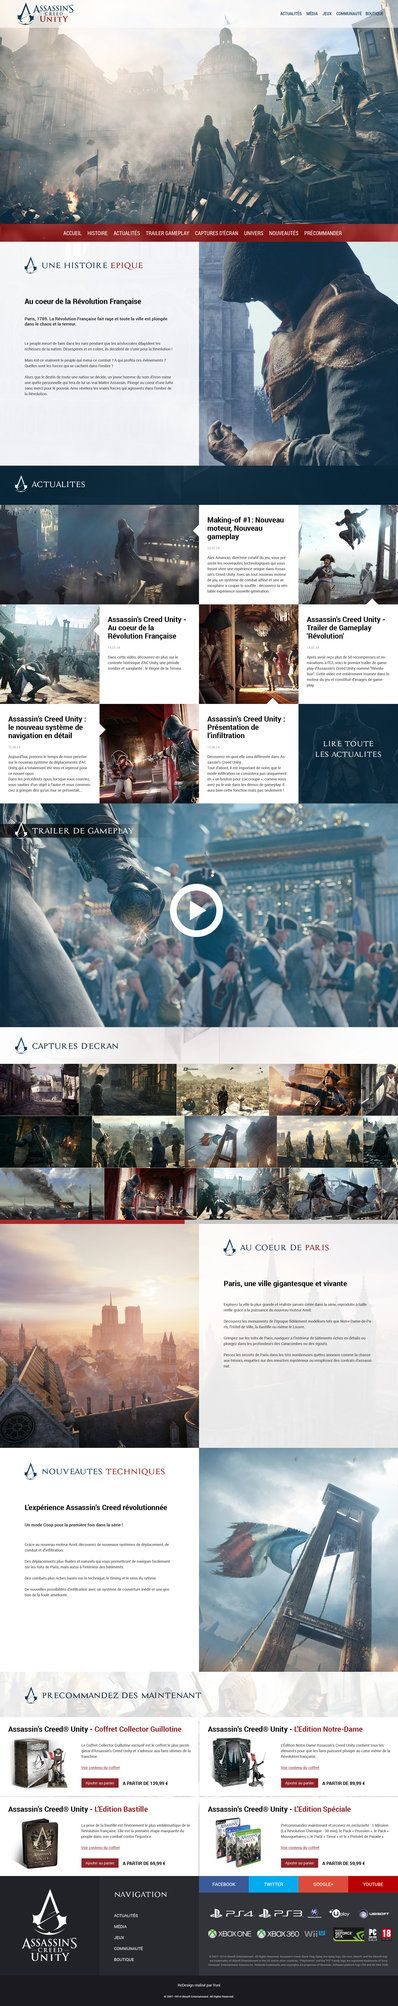 Assassin s creed unity review next available slot assassin s creed - Assassin S Creed Unity Website Redesign By Yuni Style